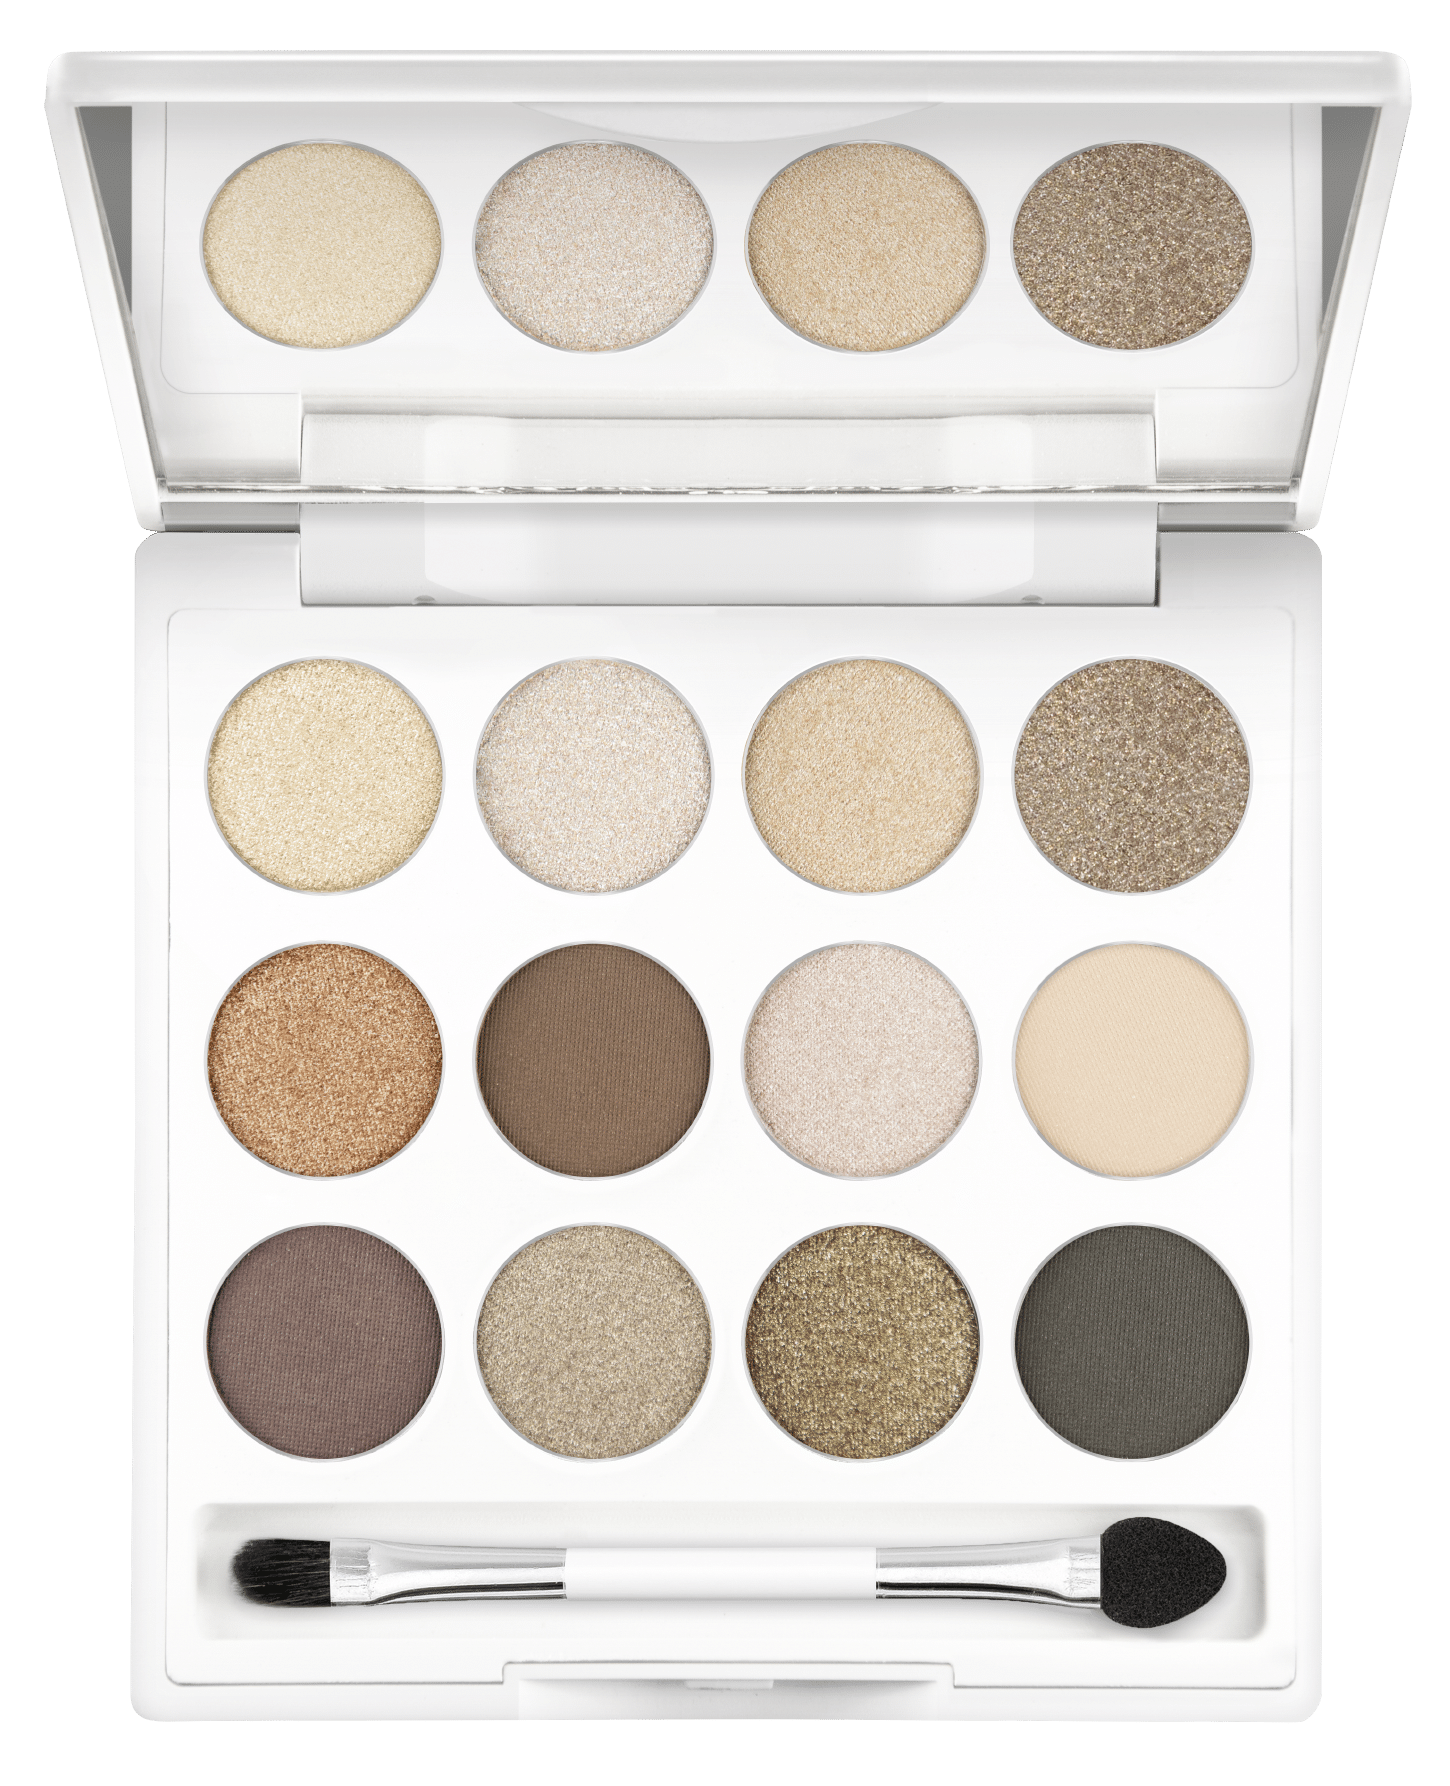 Travelight Story by Catrice: la palette di ombretti dai finish differenti